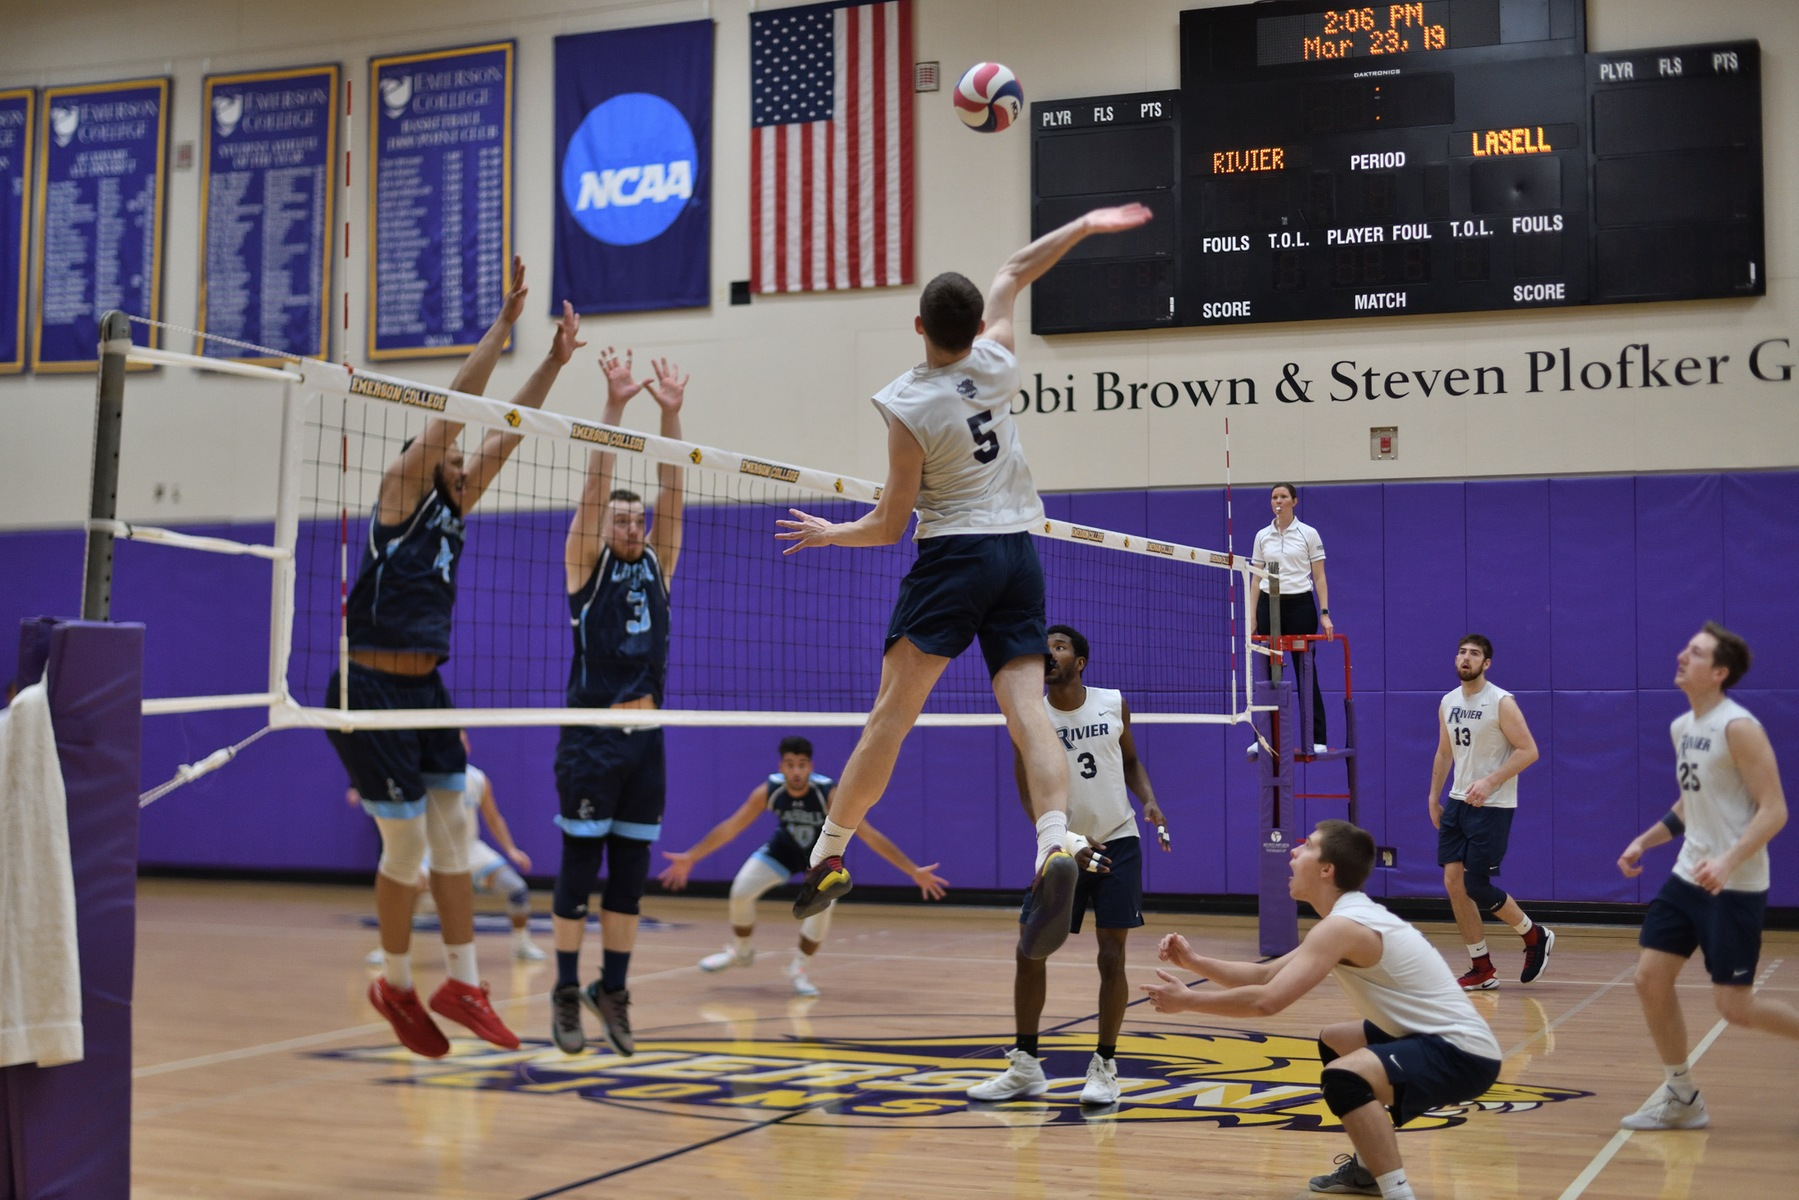 Men's Volleyball: Raiders Earn Two Conference Wins, 3-0 & 3-1.